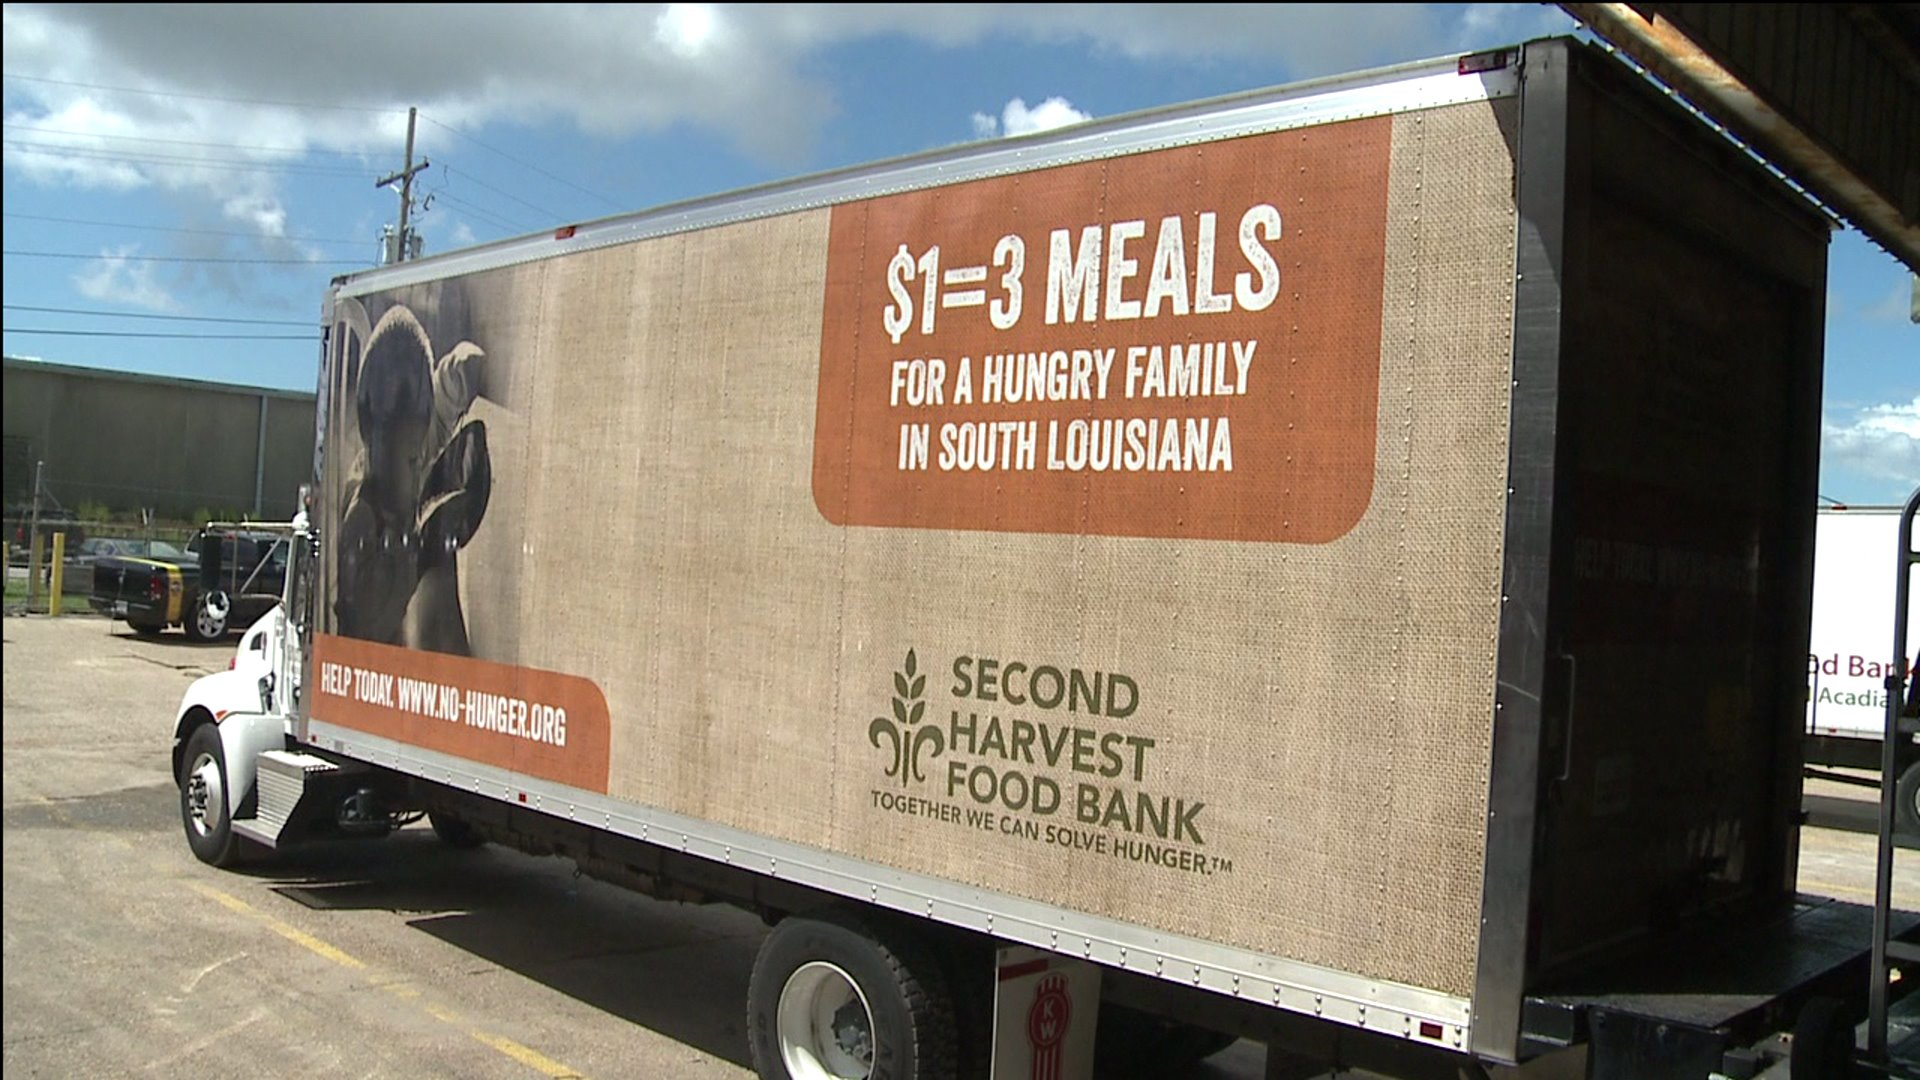 Help The Community: Donate Food Items At Langenstein's In May